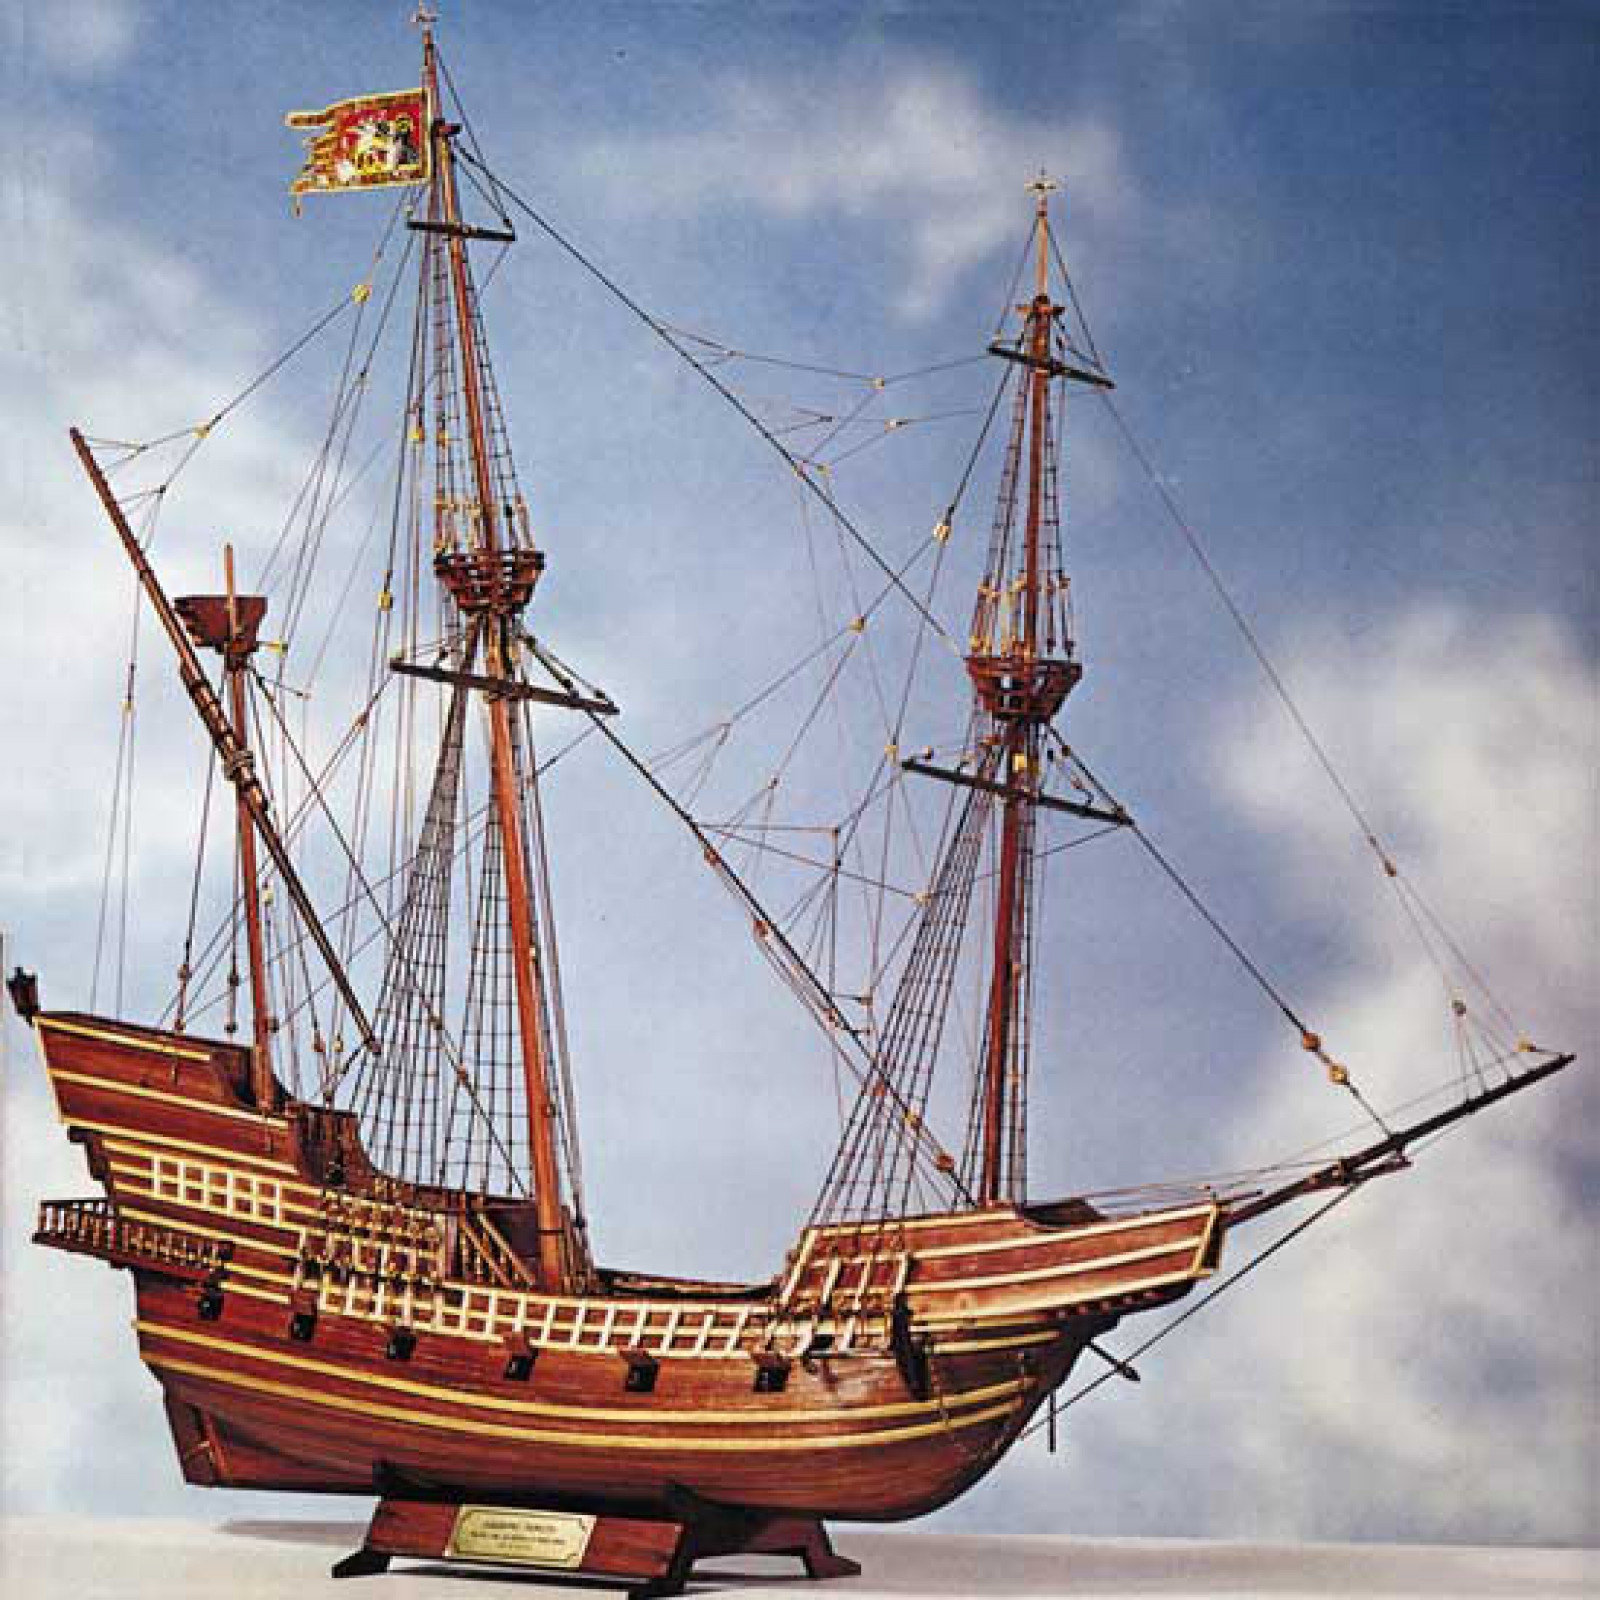 COREL VENETIAN GALLEON SHIP